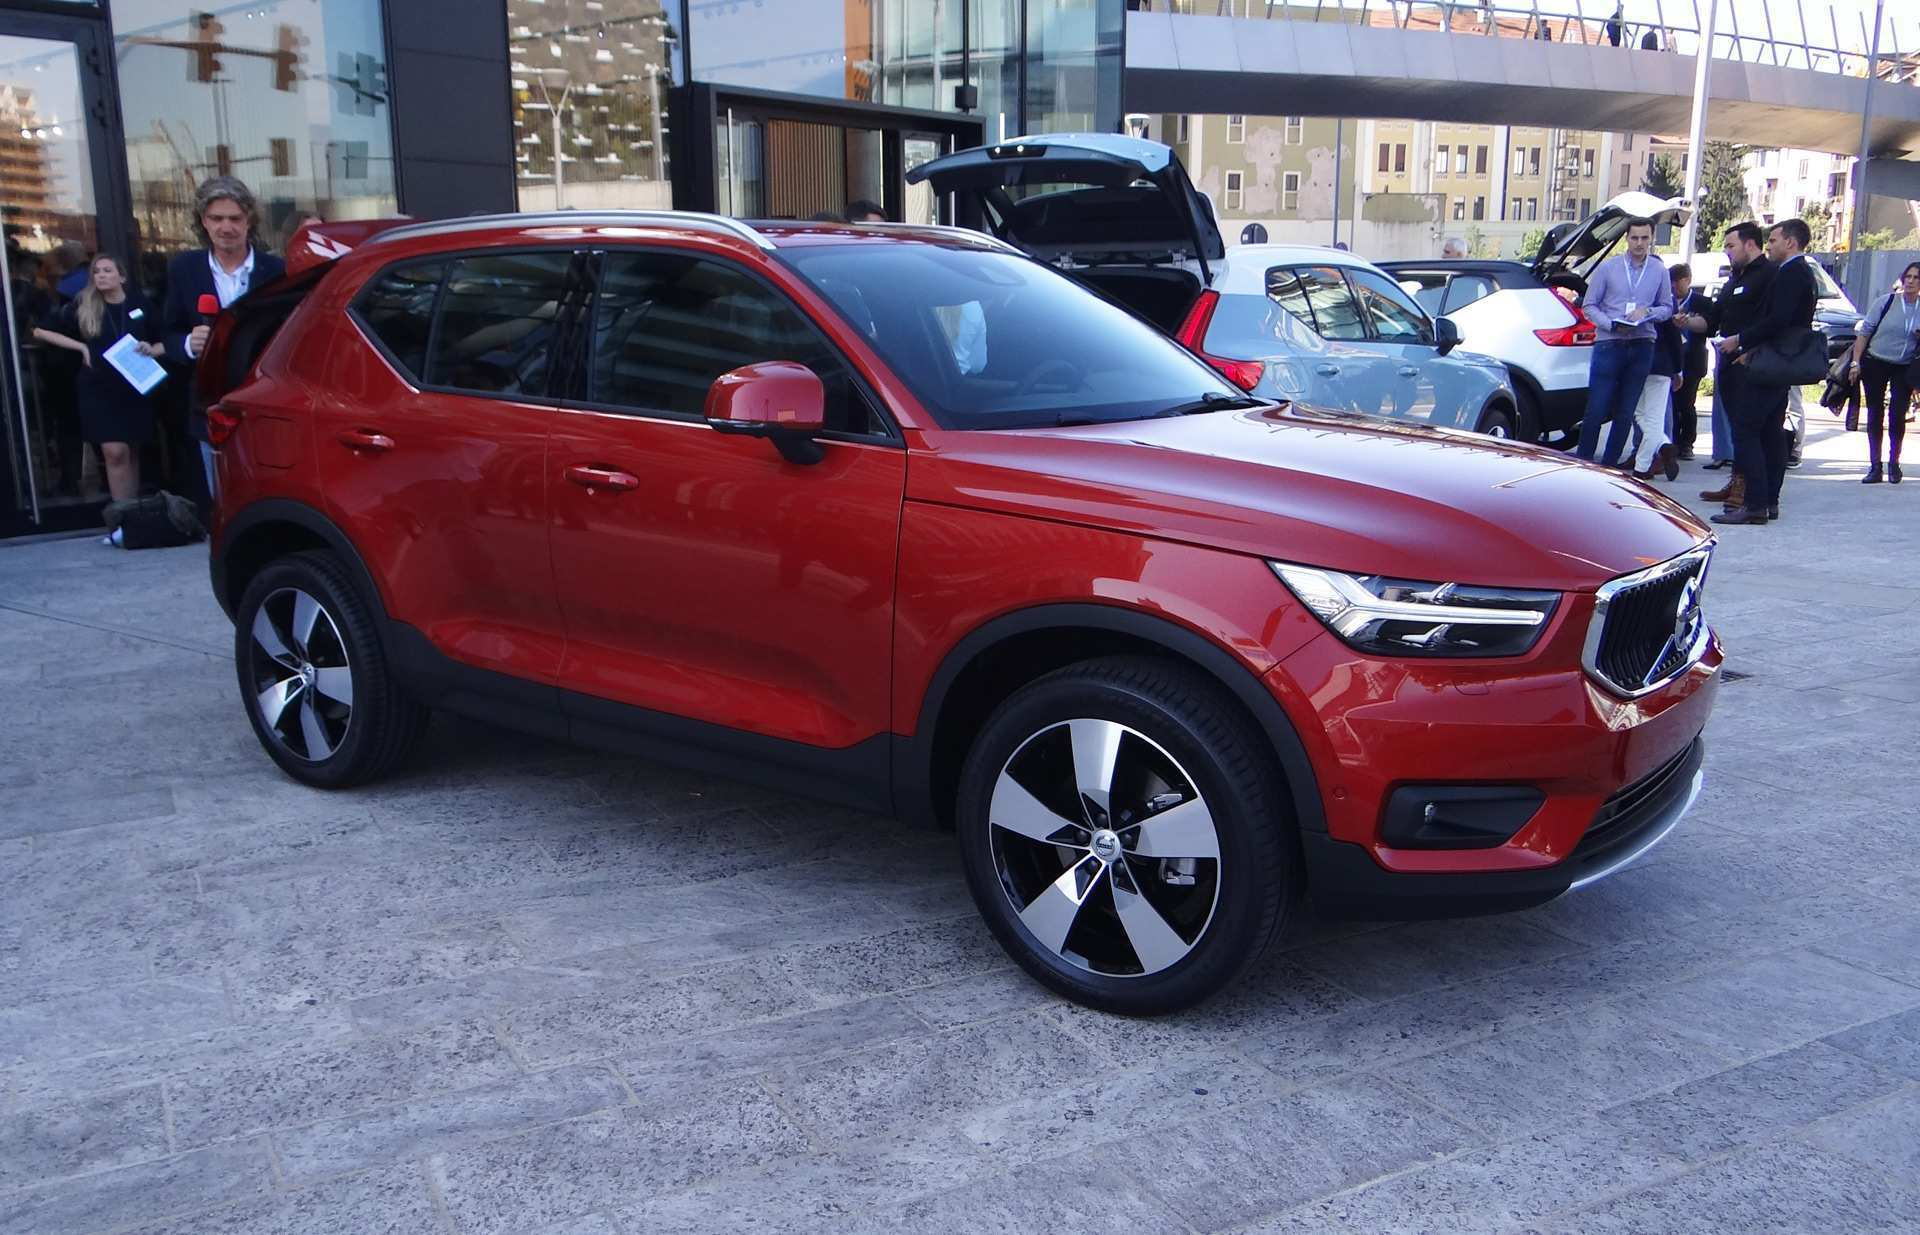 44 All New 2019 Volvo 40 Prices for 2019 Volvo 40